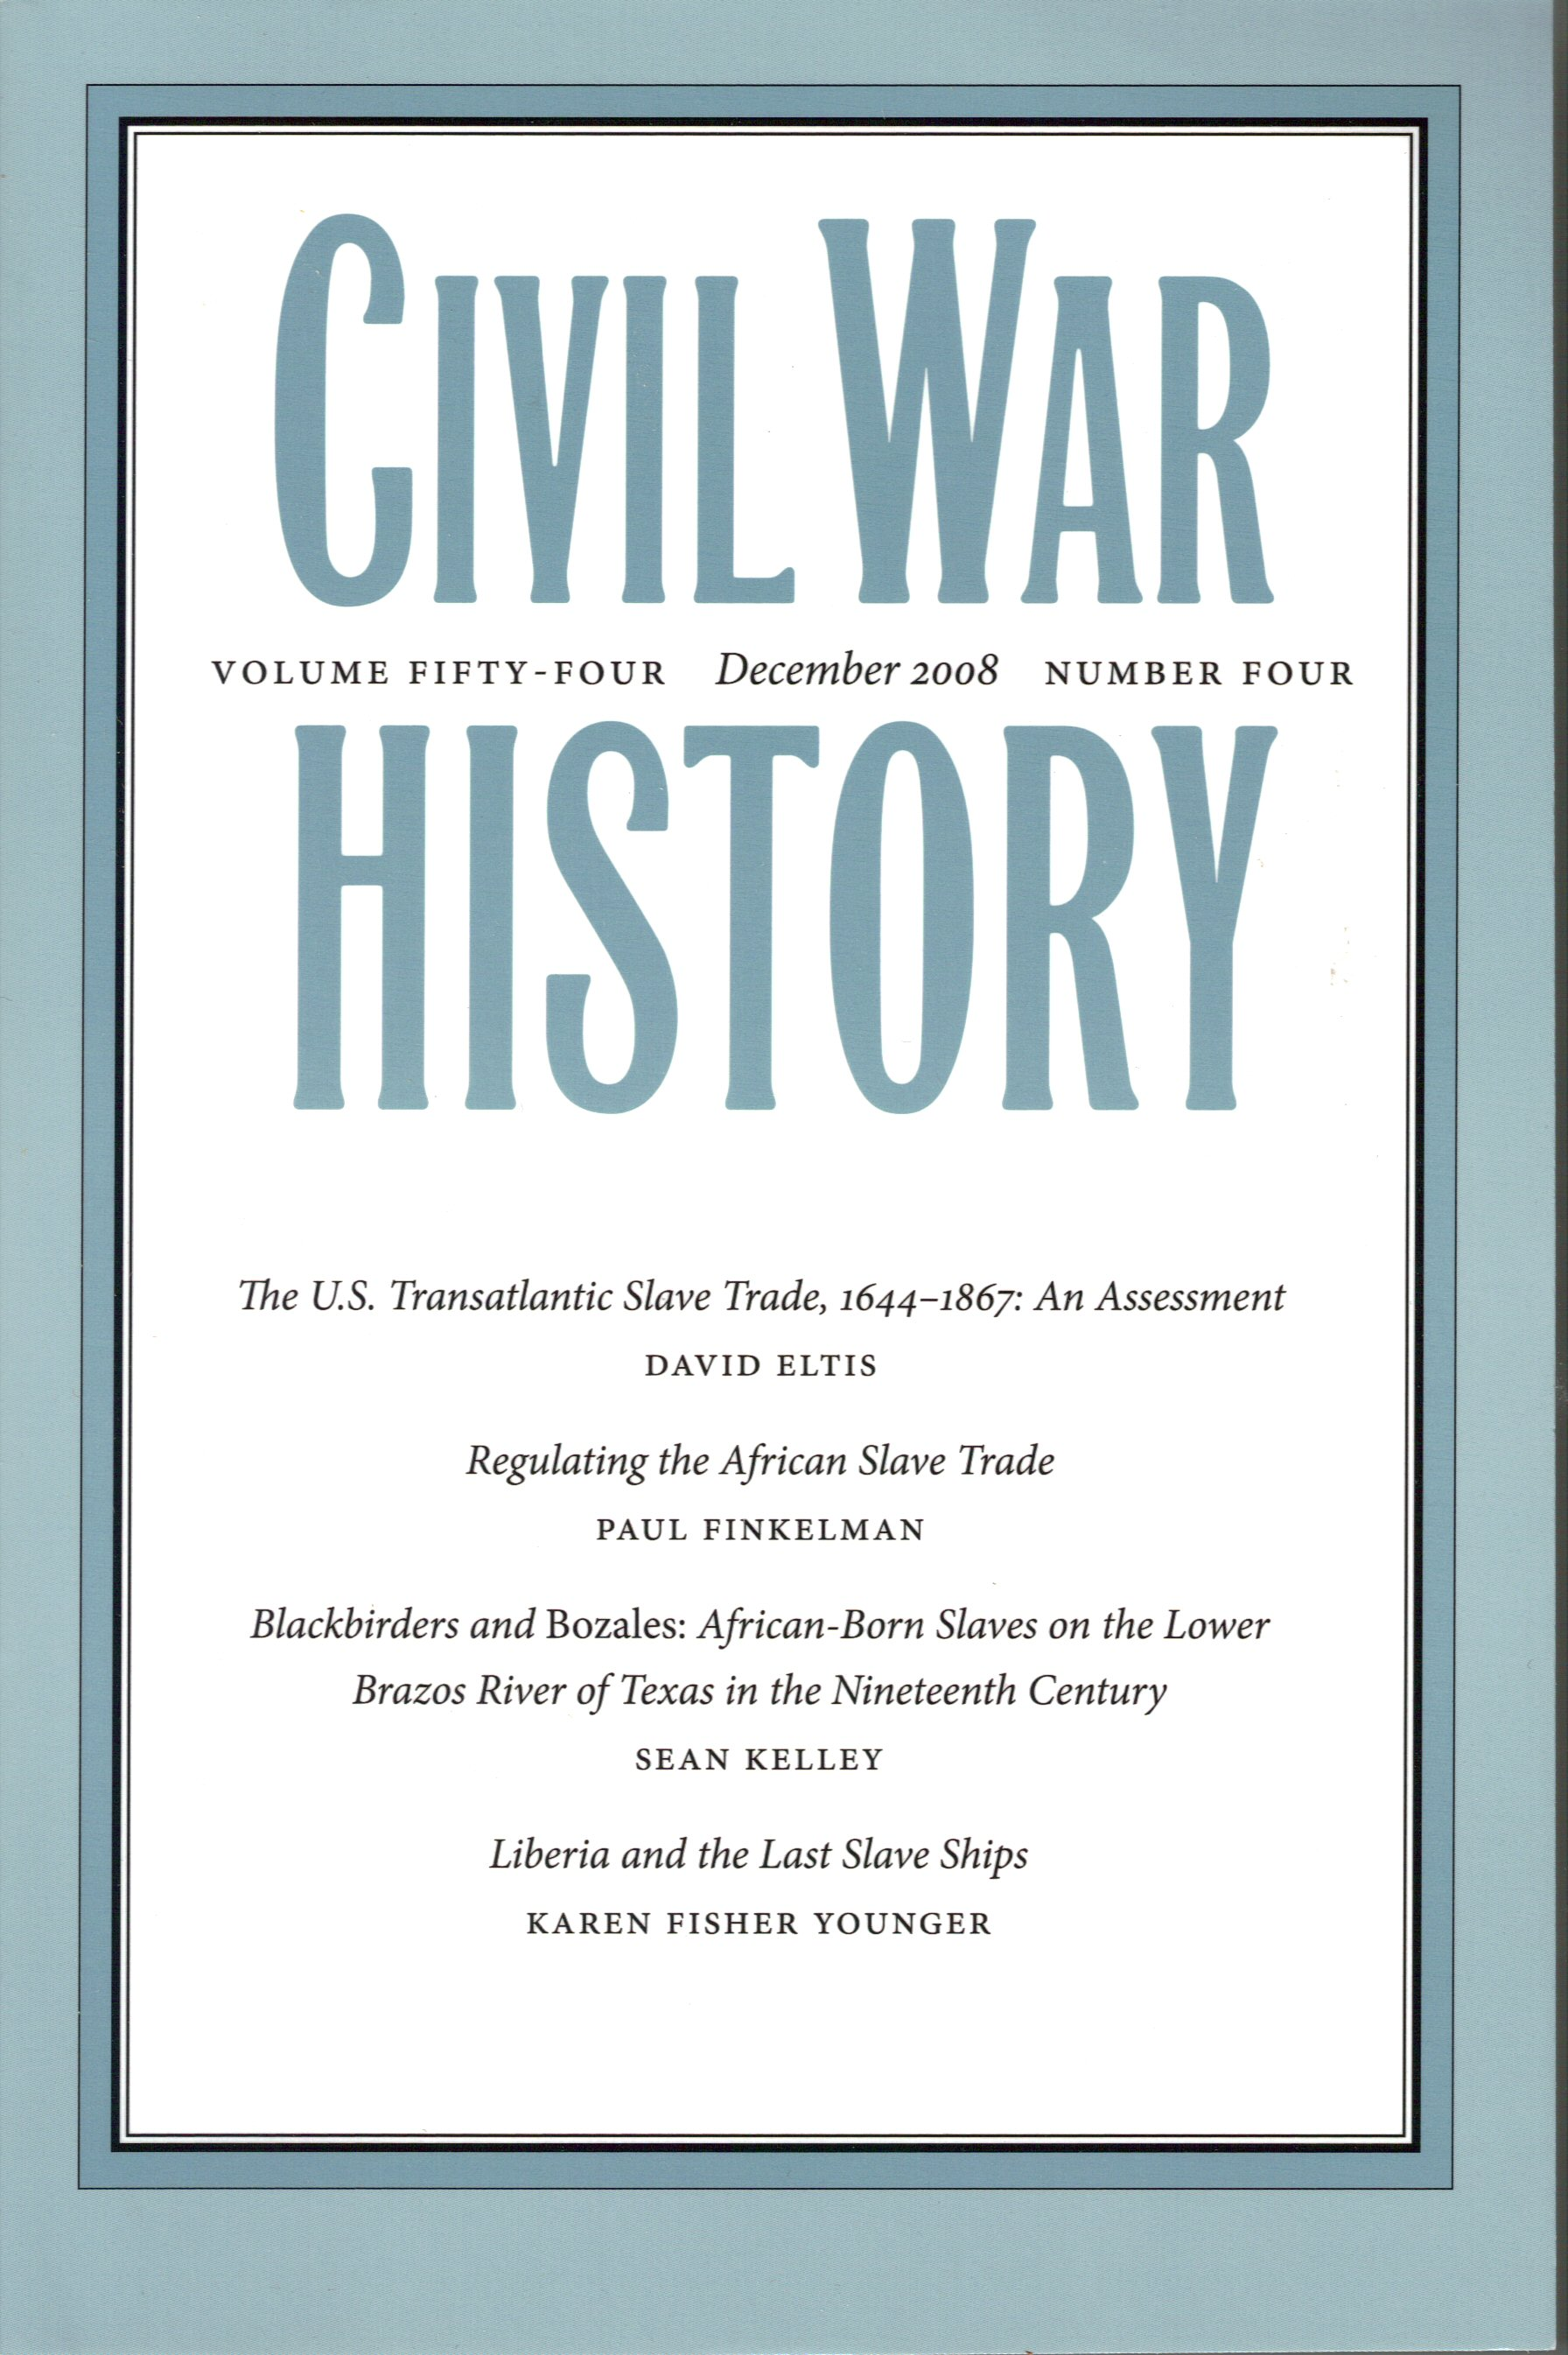 Civil War History, Volume 54, Number 4 (December 2008)